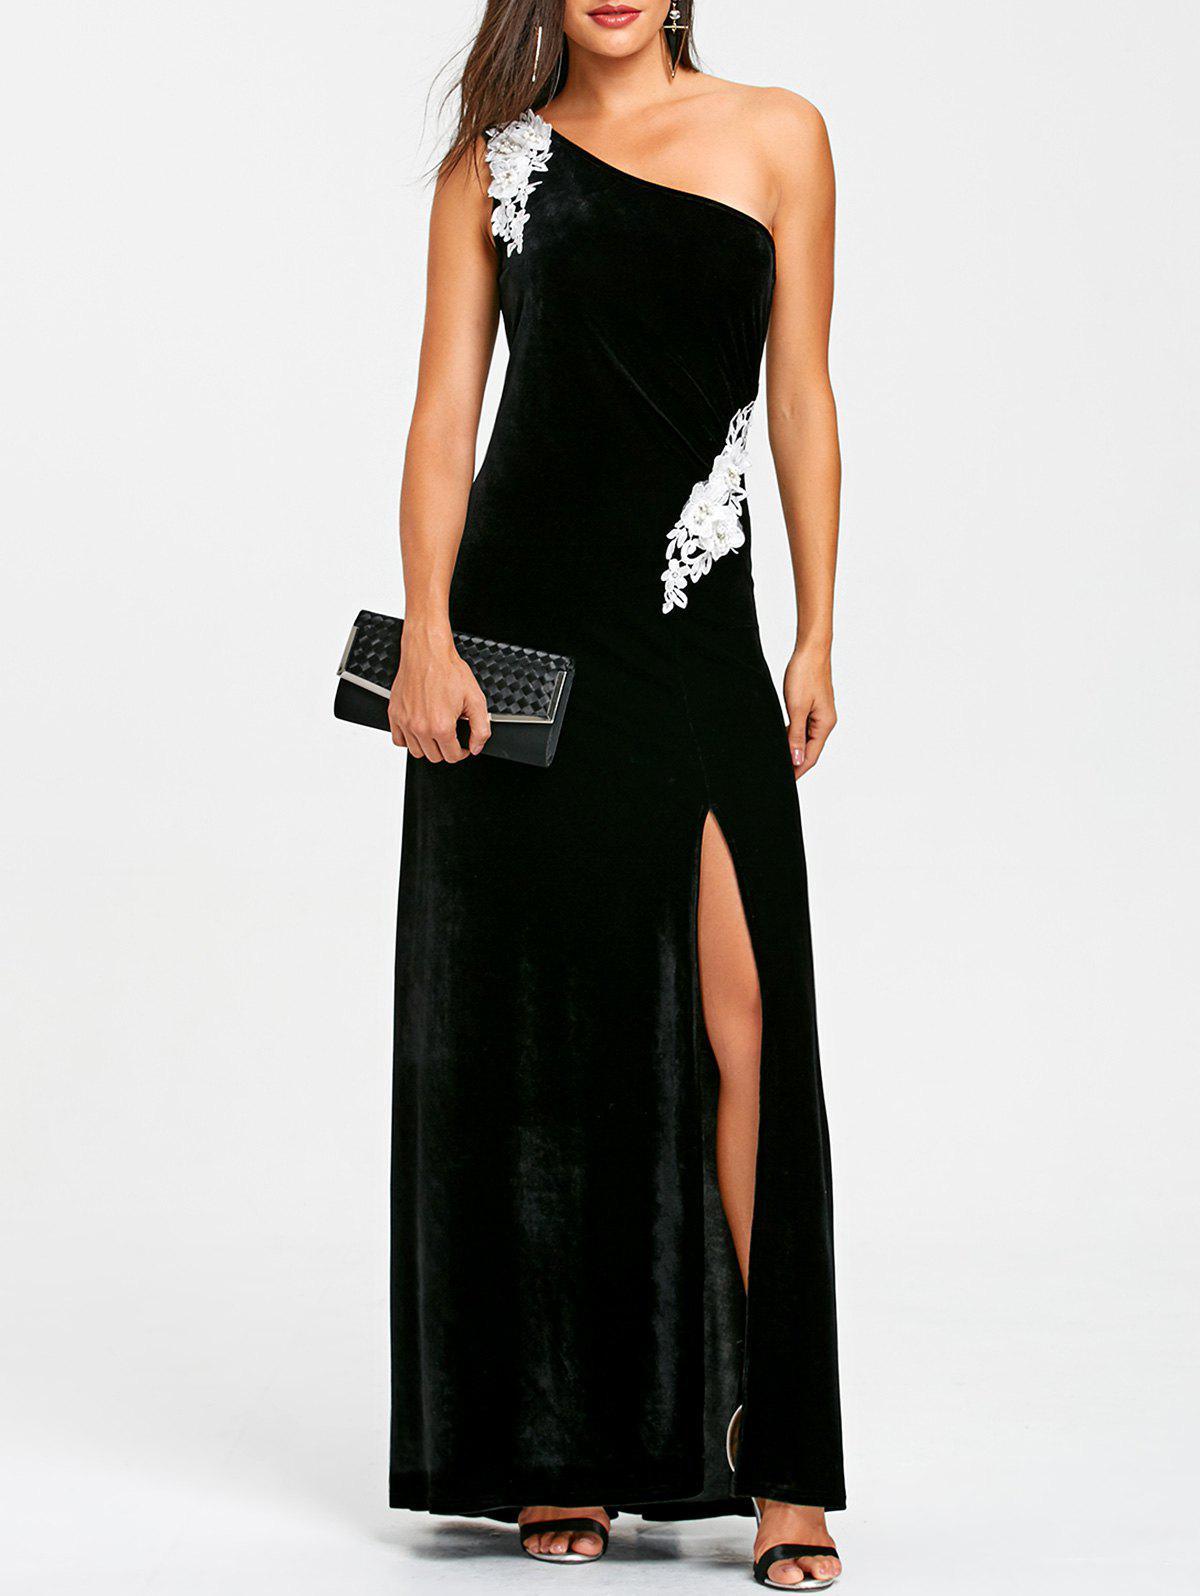 Applique One Shoulder Formal Dress - BLACK XL